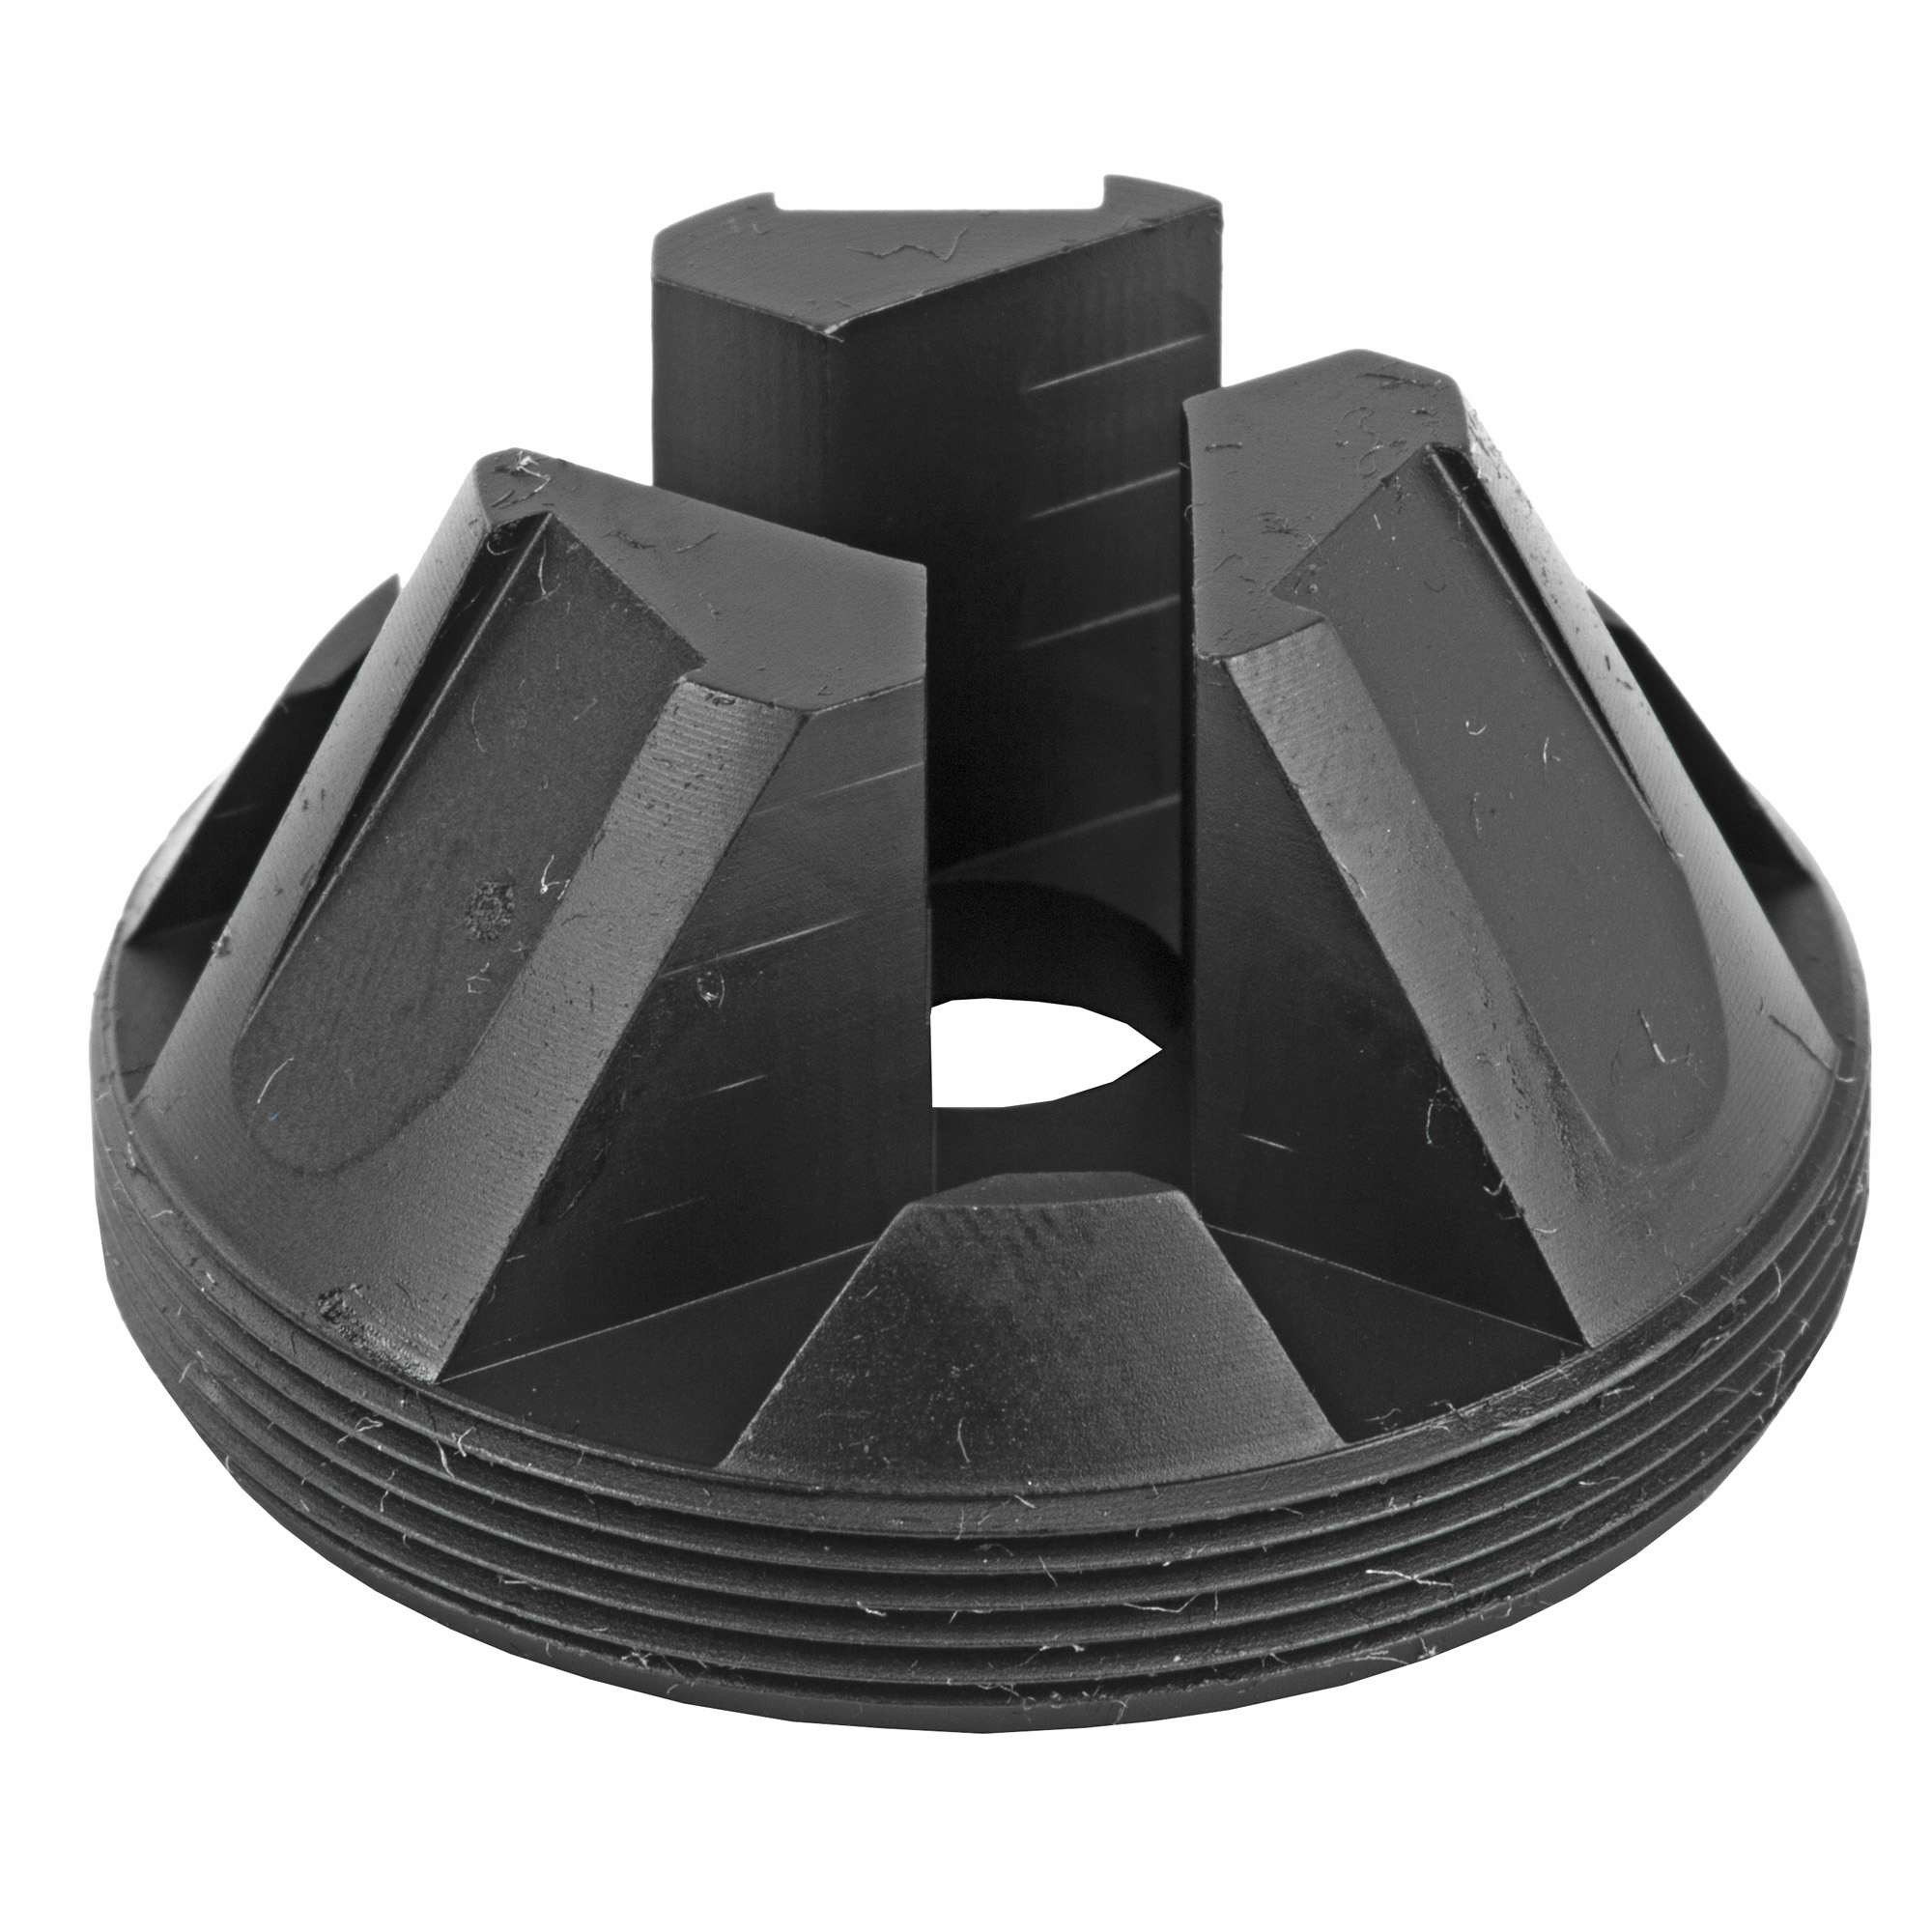 The Charlie Flash Hider Front Cap replaces the standard Flat Front Cap that ships standard with Chimera 300 and Saker ASR (all models). This Trifecta-design flash hider suppresses excess visual flash on SBRs and full-auto firearms. Using the correct front caps will reduce dB levels between 2-5 dB. Charlie accessories are compatible with Chimera 300 and Saker ASR (all models).